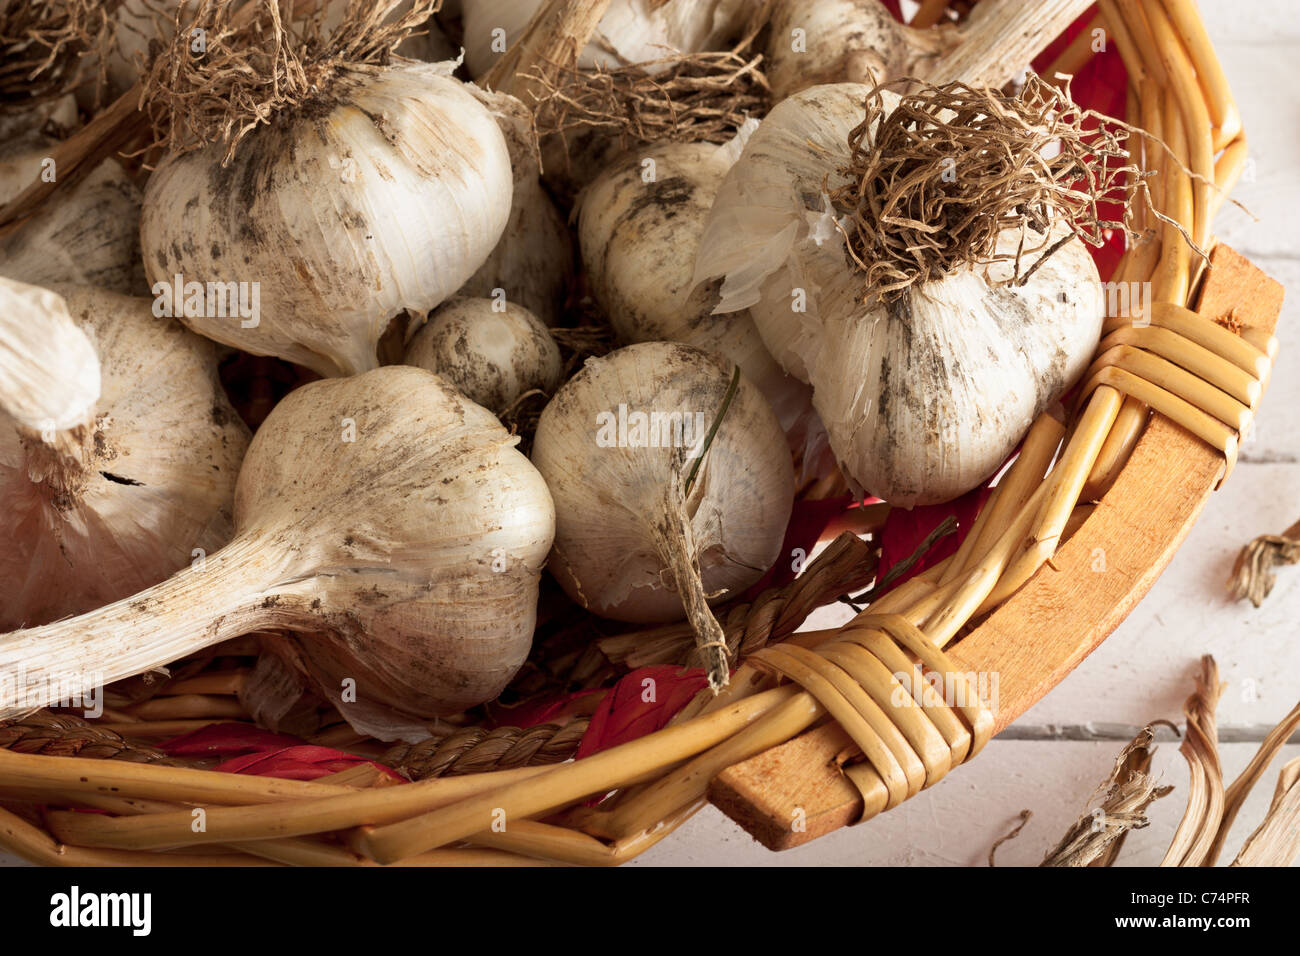 Just Plucked Garlic in a Wicker Basket on White Wood - Stock Image